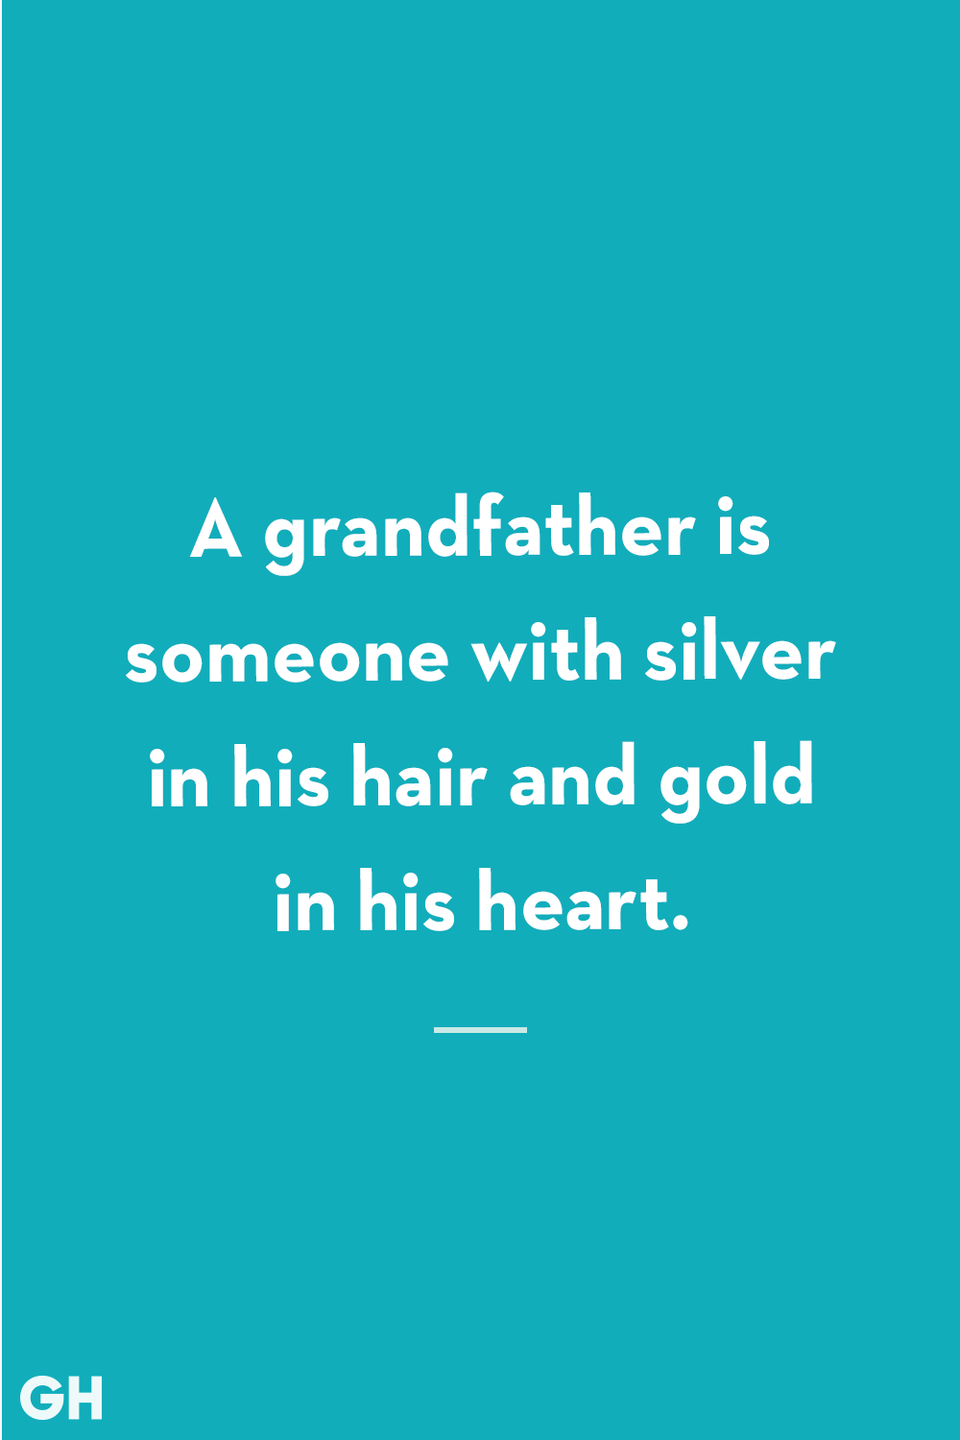 <p>A grandfather is someone with silver in his hair and gold in his heart.</p>